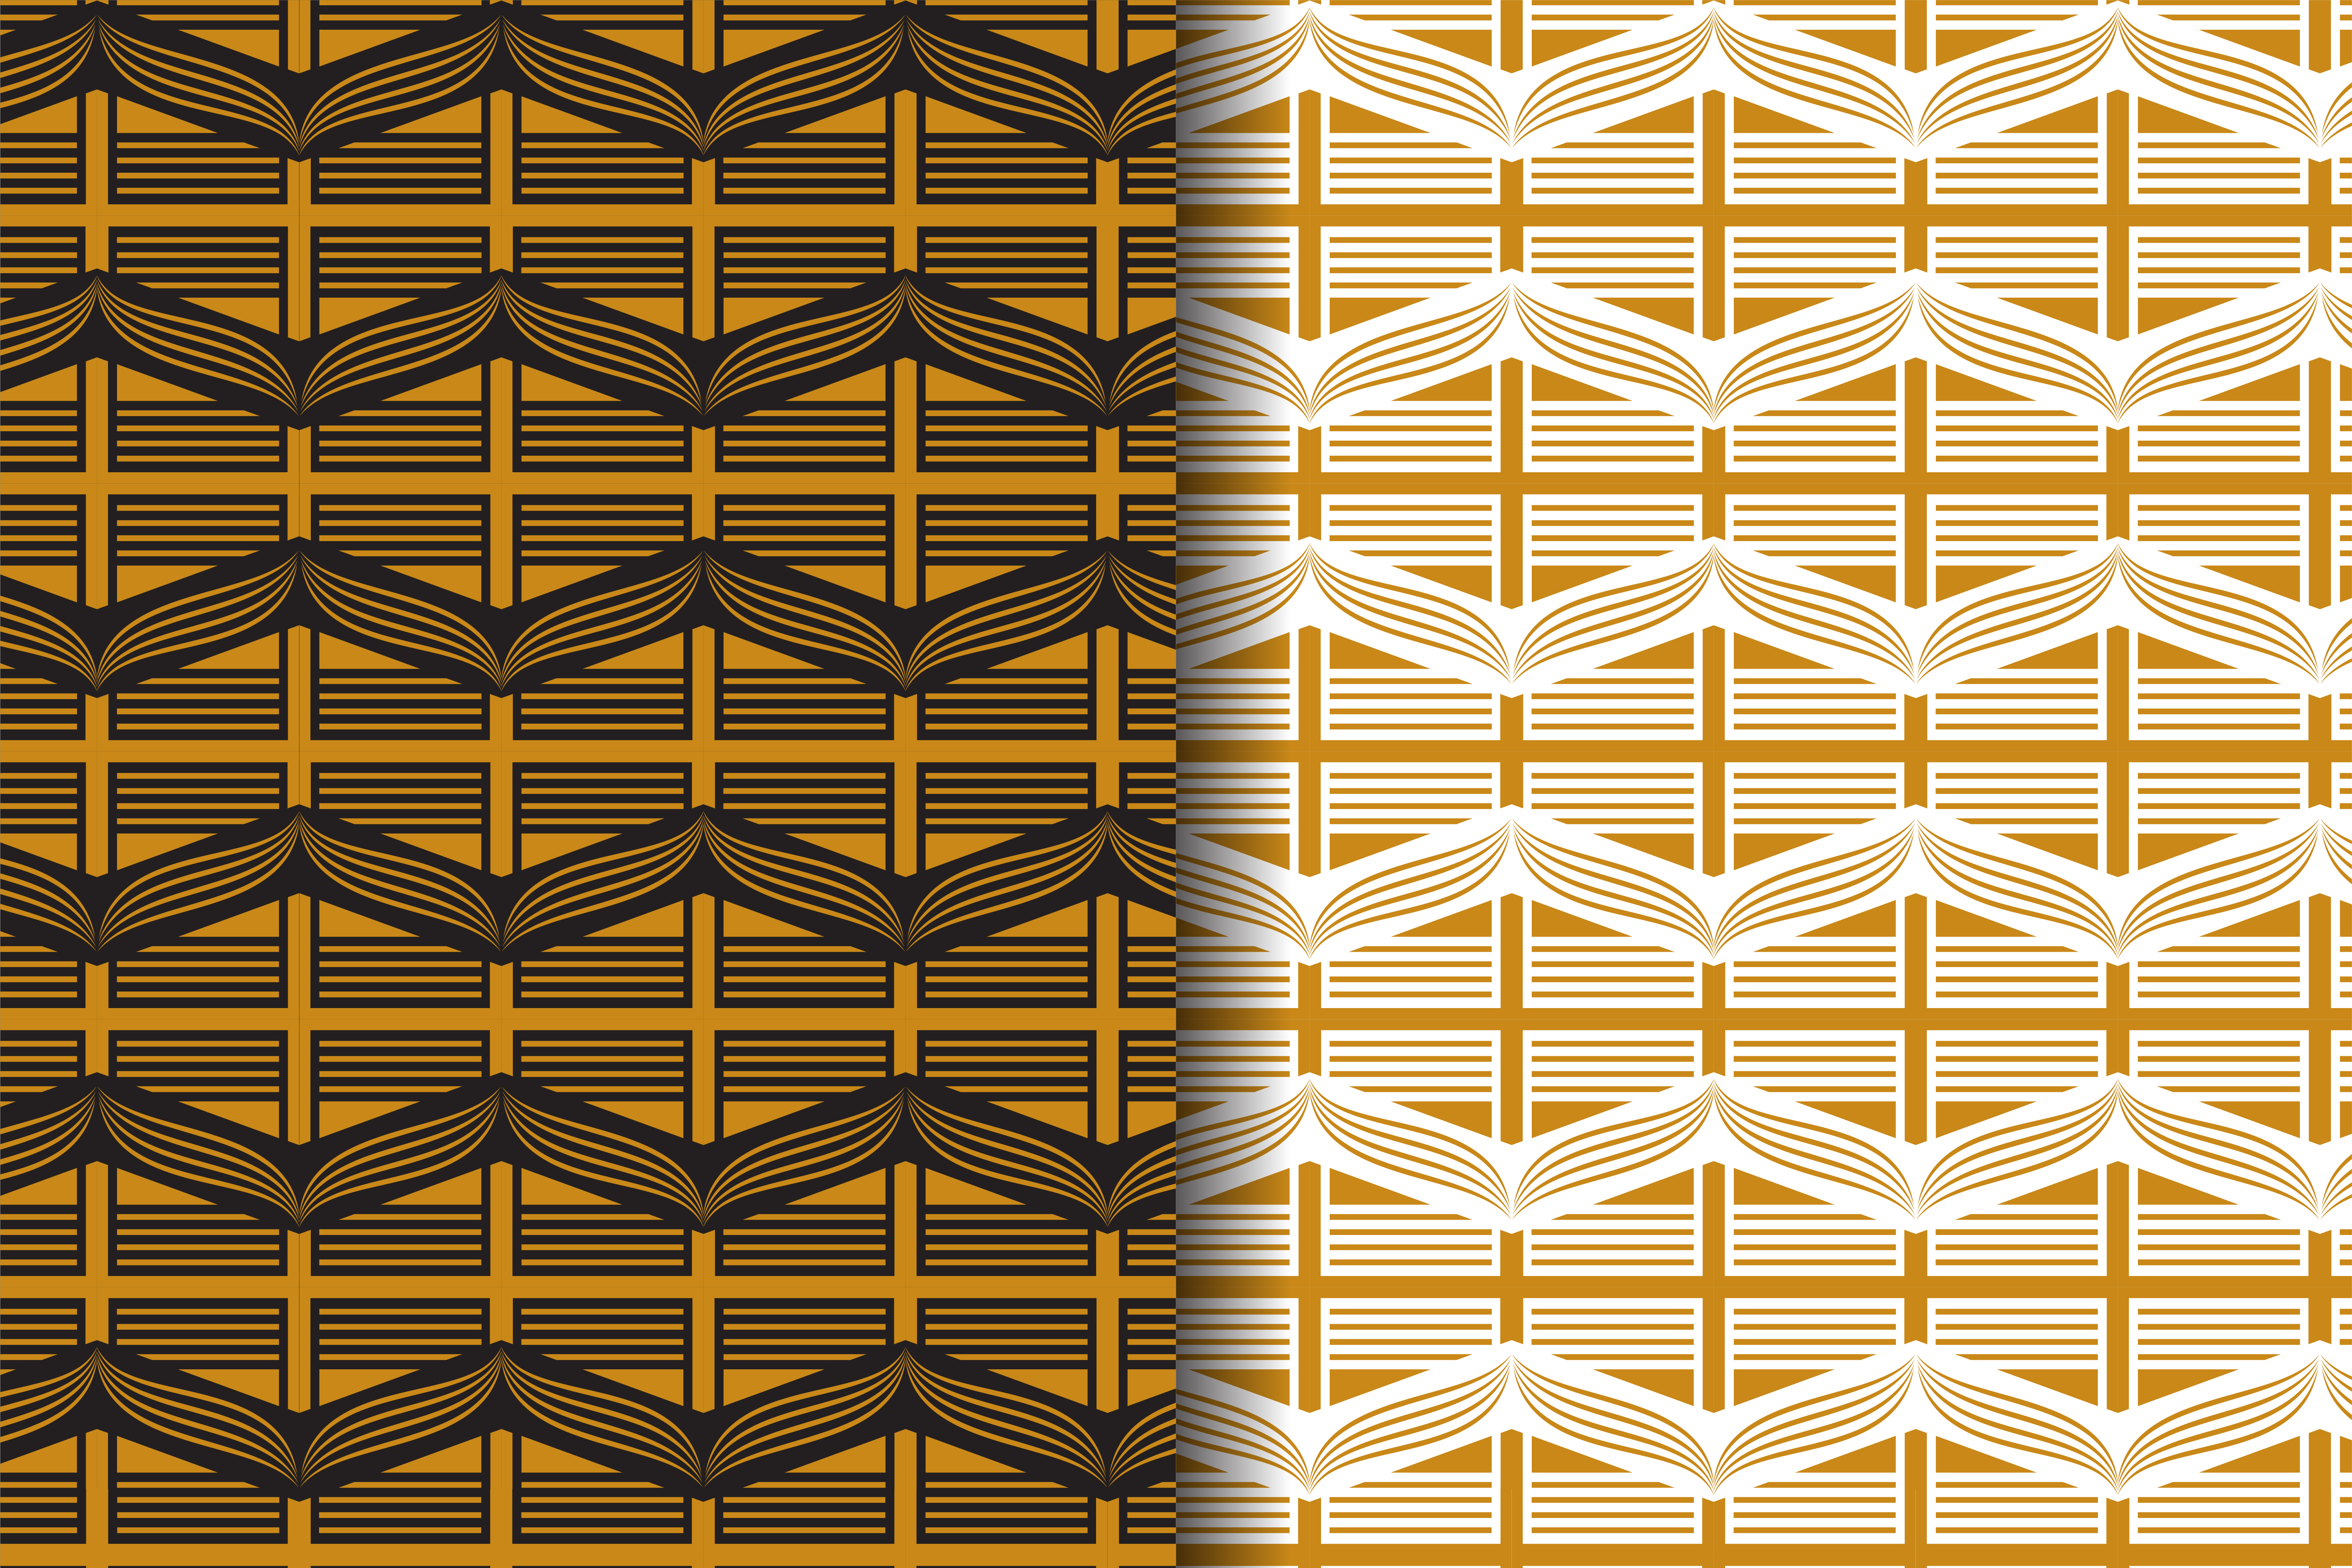 Download Free Gold Pattern Abstract Curve Line Graphic By Noory Shopper for Cricut Explore, Silhouette and other cutting machines.